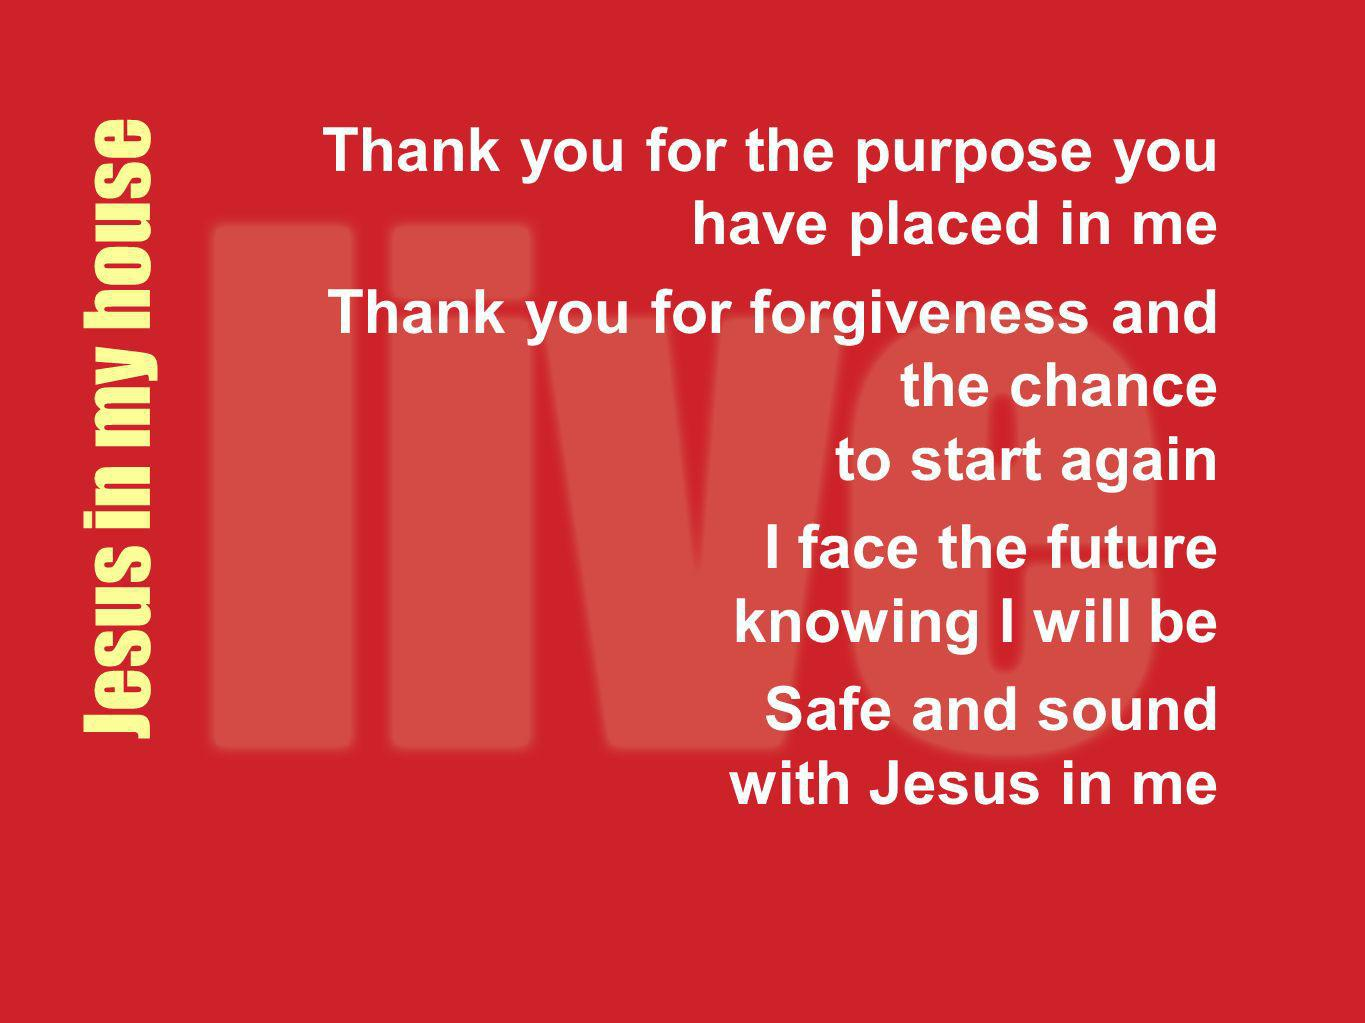 Jesus in my house Thank you for the purpose you have placed in me